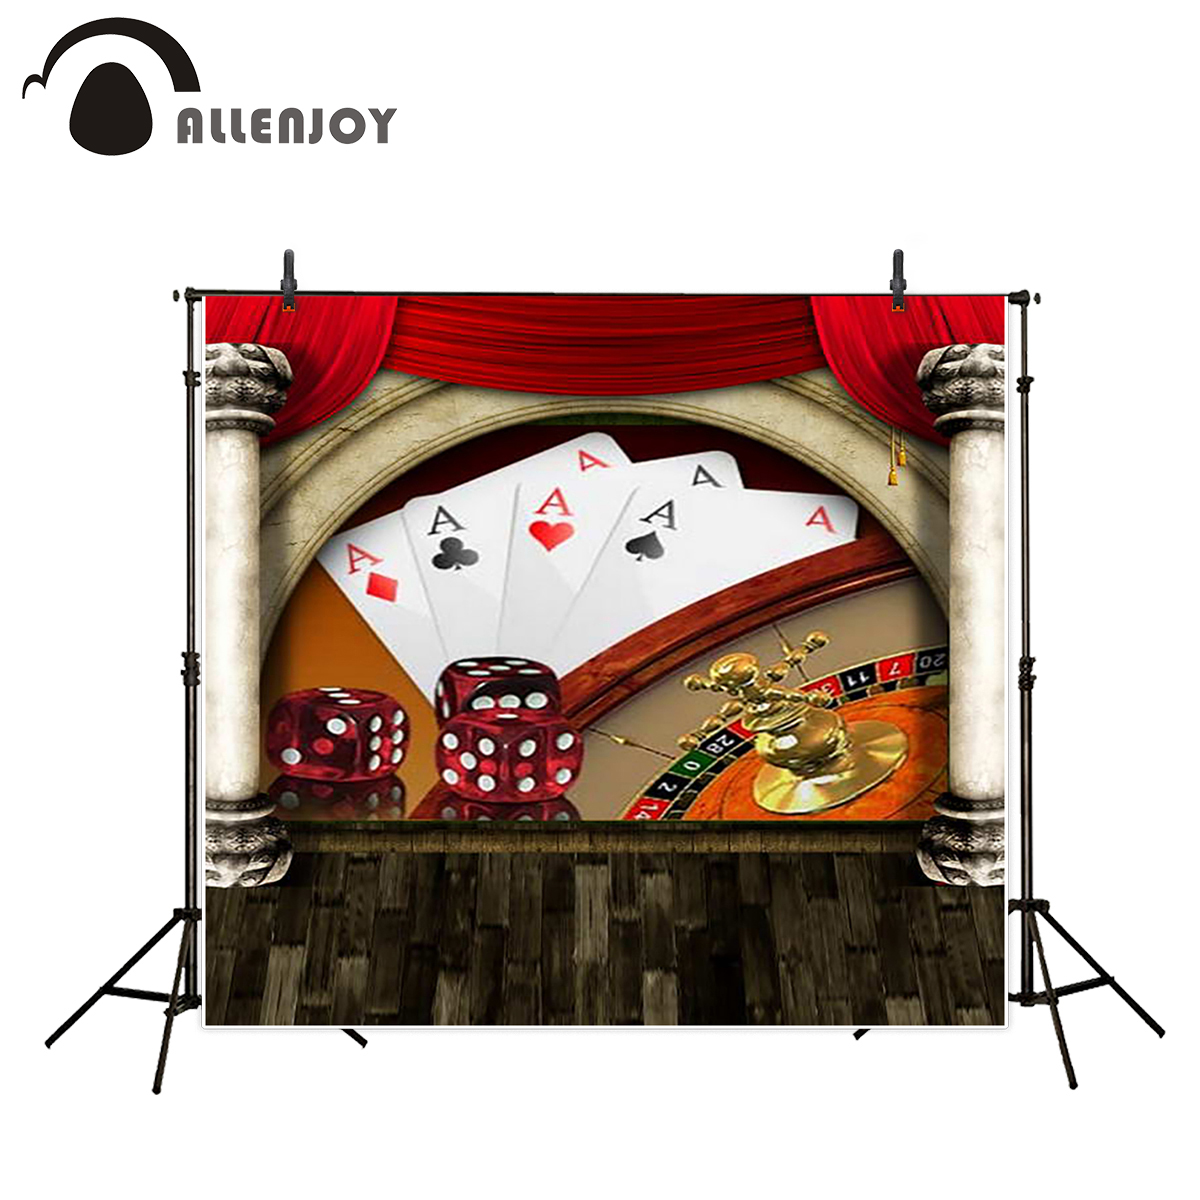 Allenjoy background photography casino playing card dice backgrounds photo studio photo printer professional backdrop allenjoy backdrop background wonderland